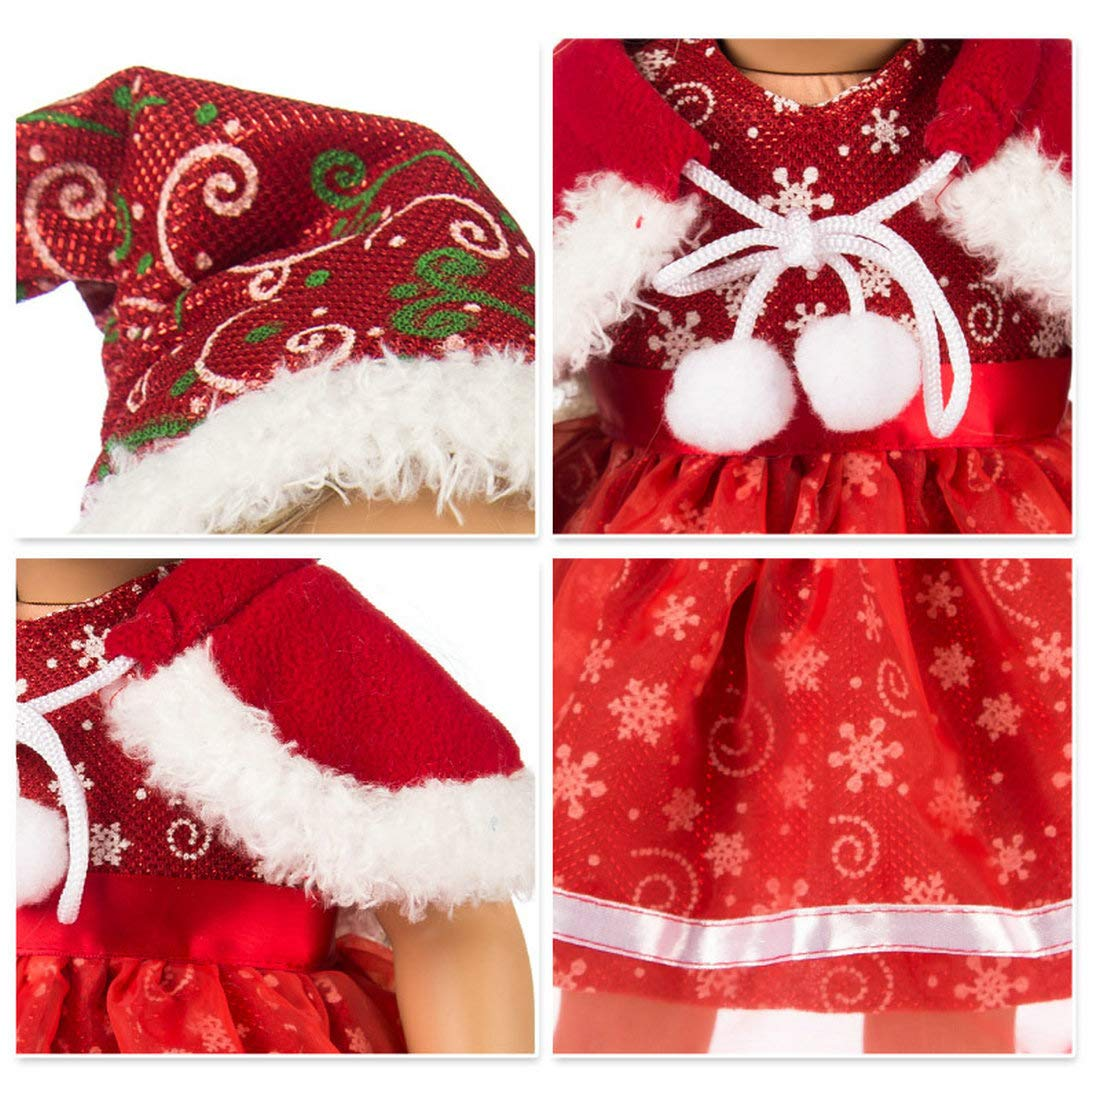 ZKB10 Lidianzhi Red-Snowflake TianBo 3pc Christmas Red Color Including Snowflake Hat Shawl Dresses Outsuits for 18 Inch American Girl Dolls